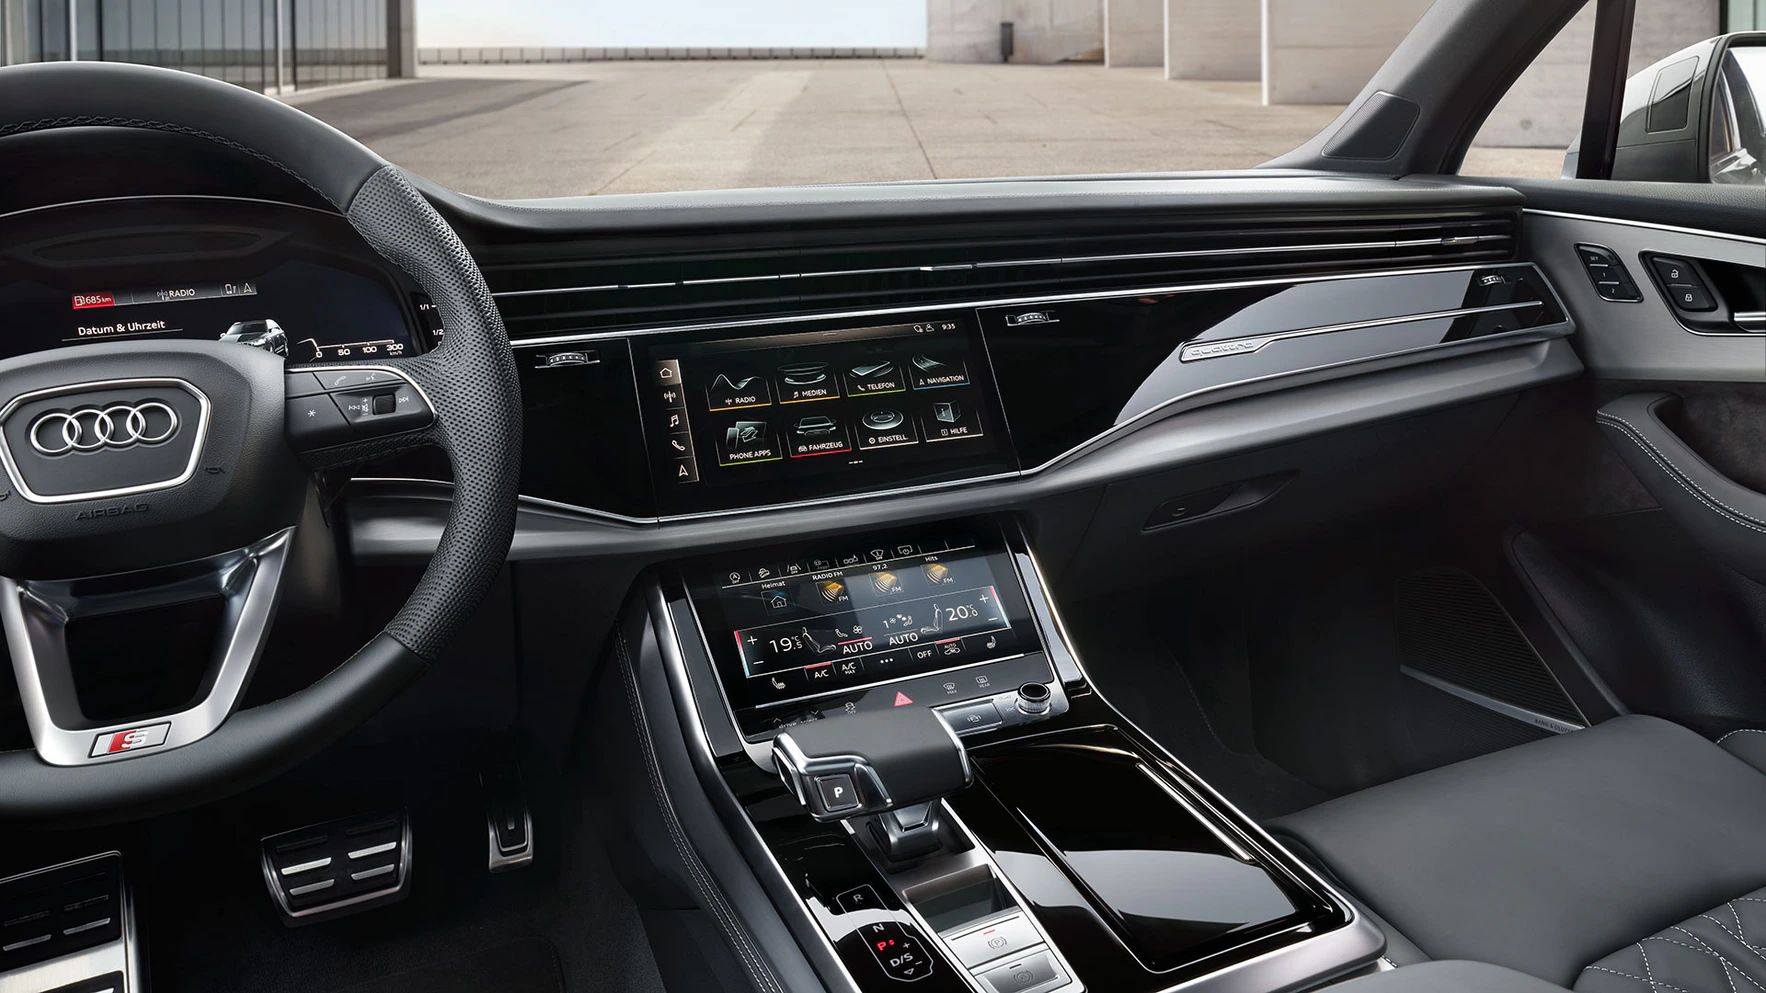 Audi Q7 Audi virtual cockpit plus